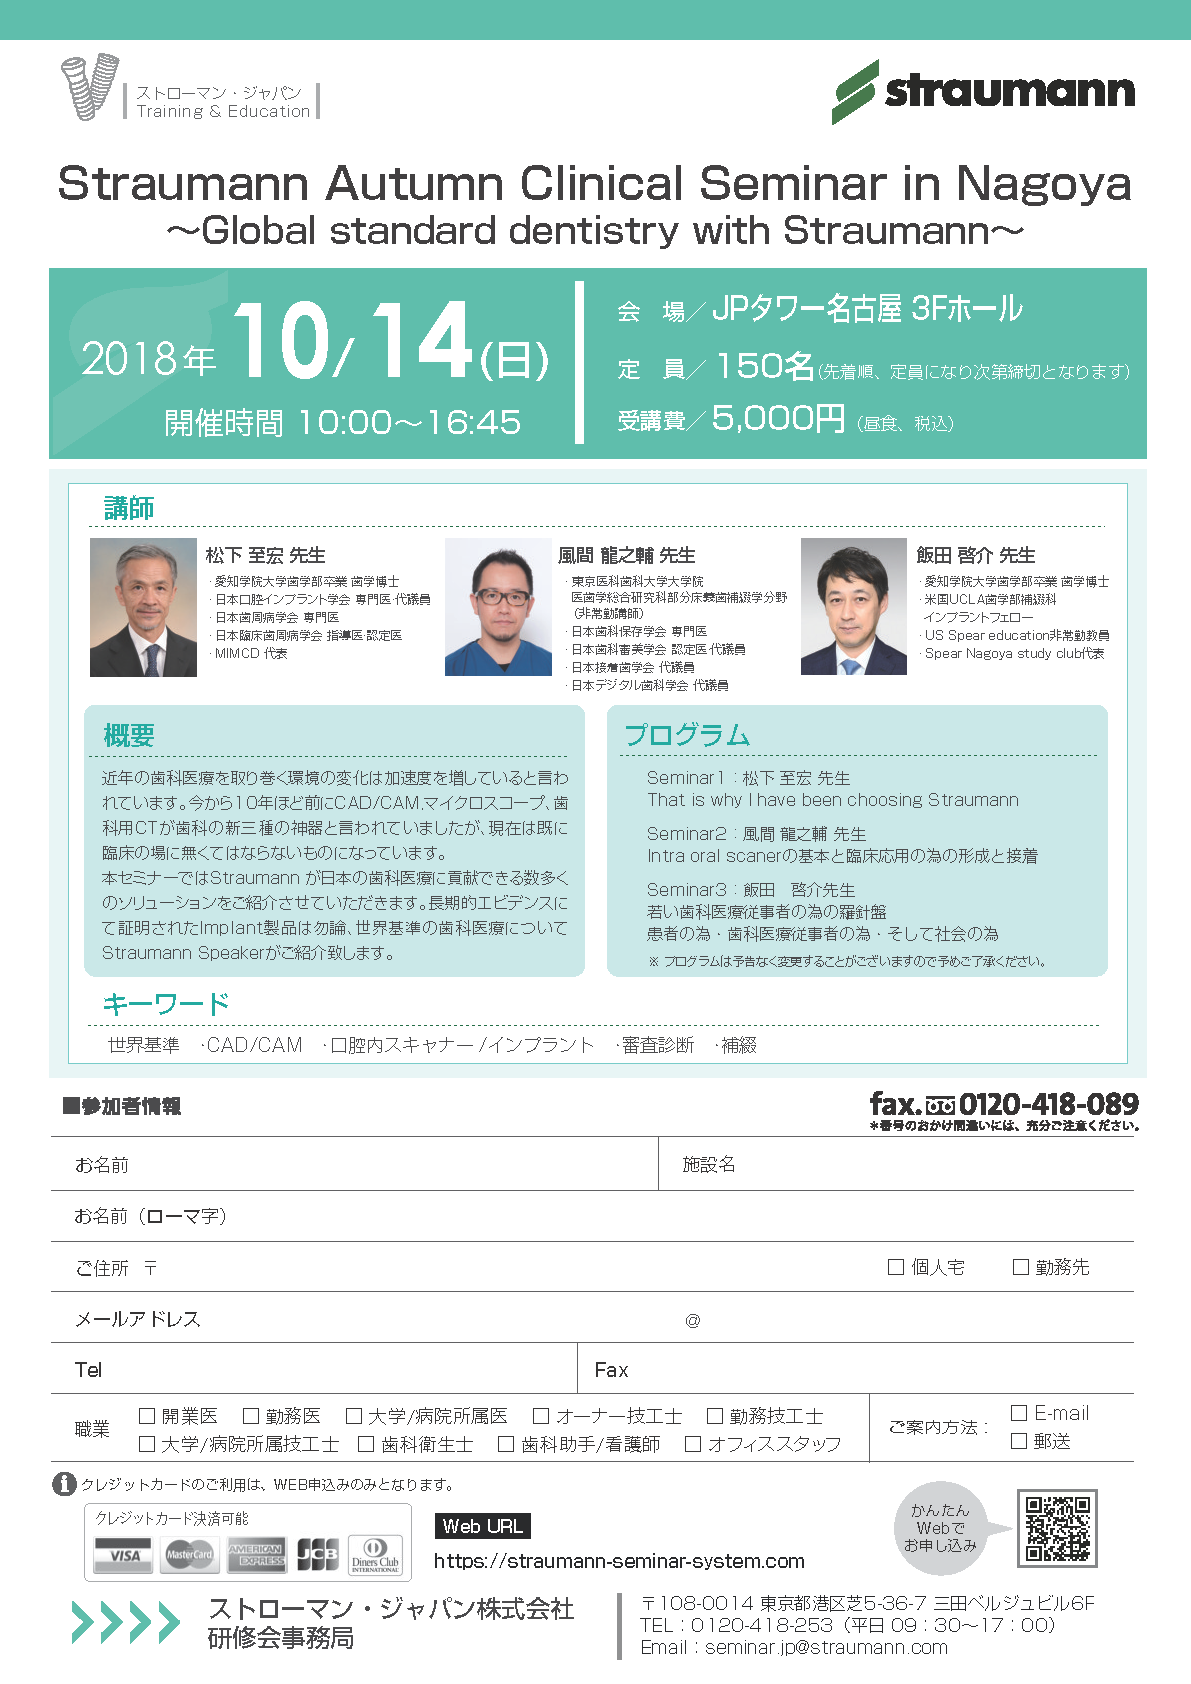 Straumann Autumn Clinical Seminar in Nagoya  ~Global standard dentistry with Straumann~